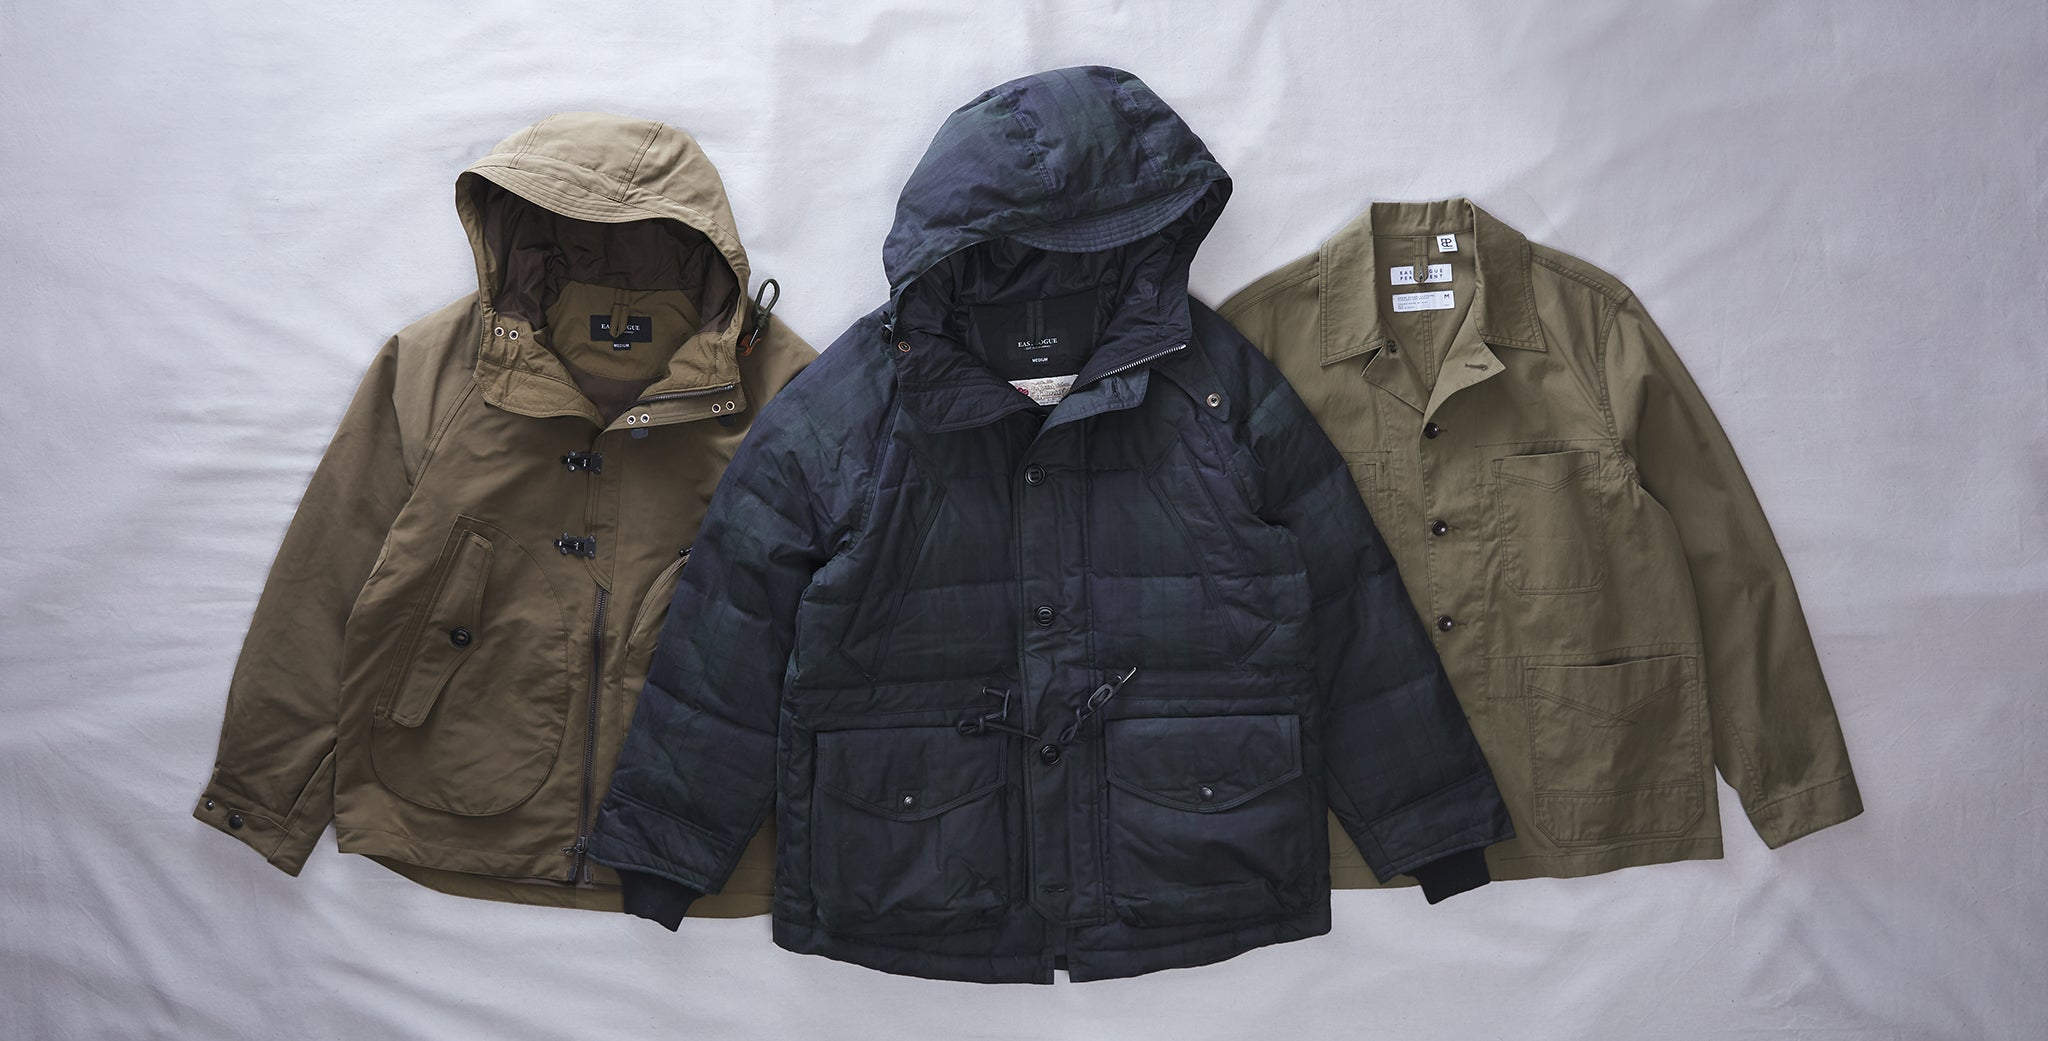 Division Road Weather Ready Warrior Release